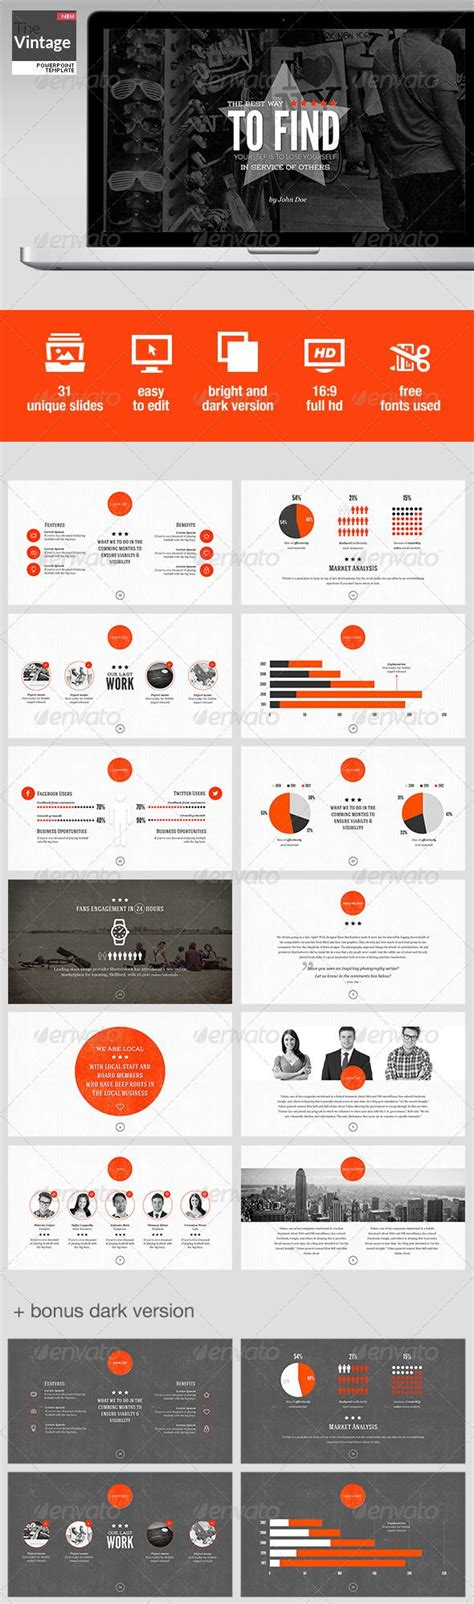 company powerpoint template design johnson and johnson 11 best presentation deck designs images on pinterest